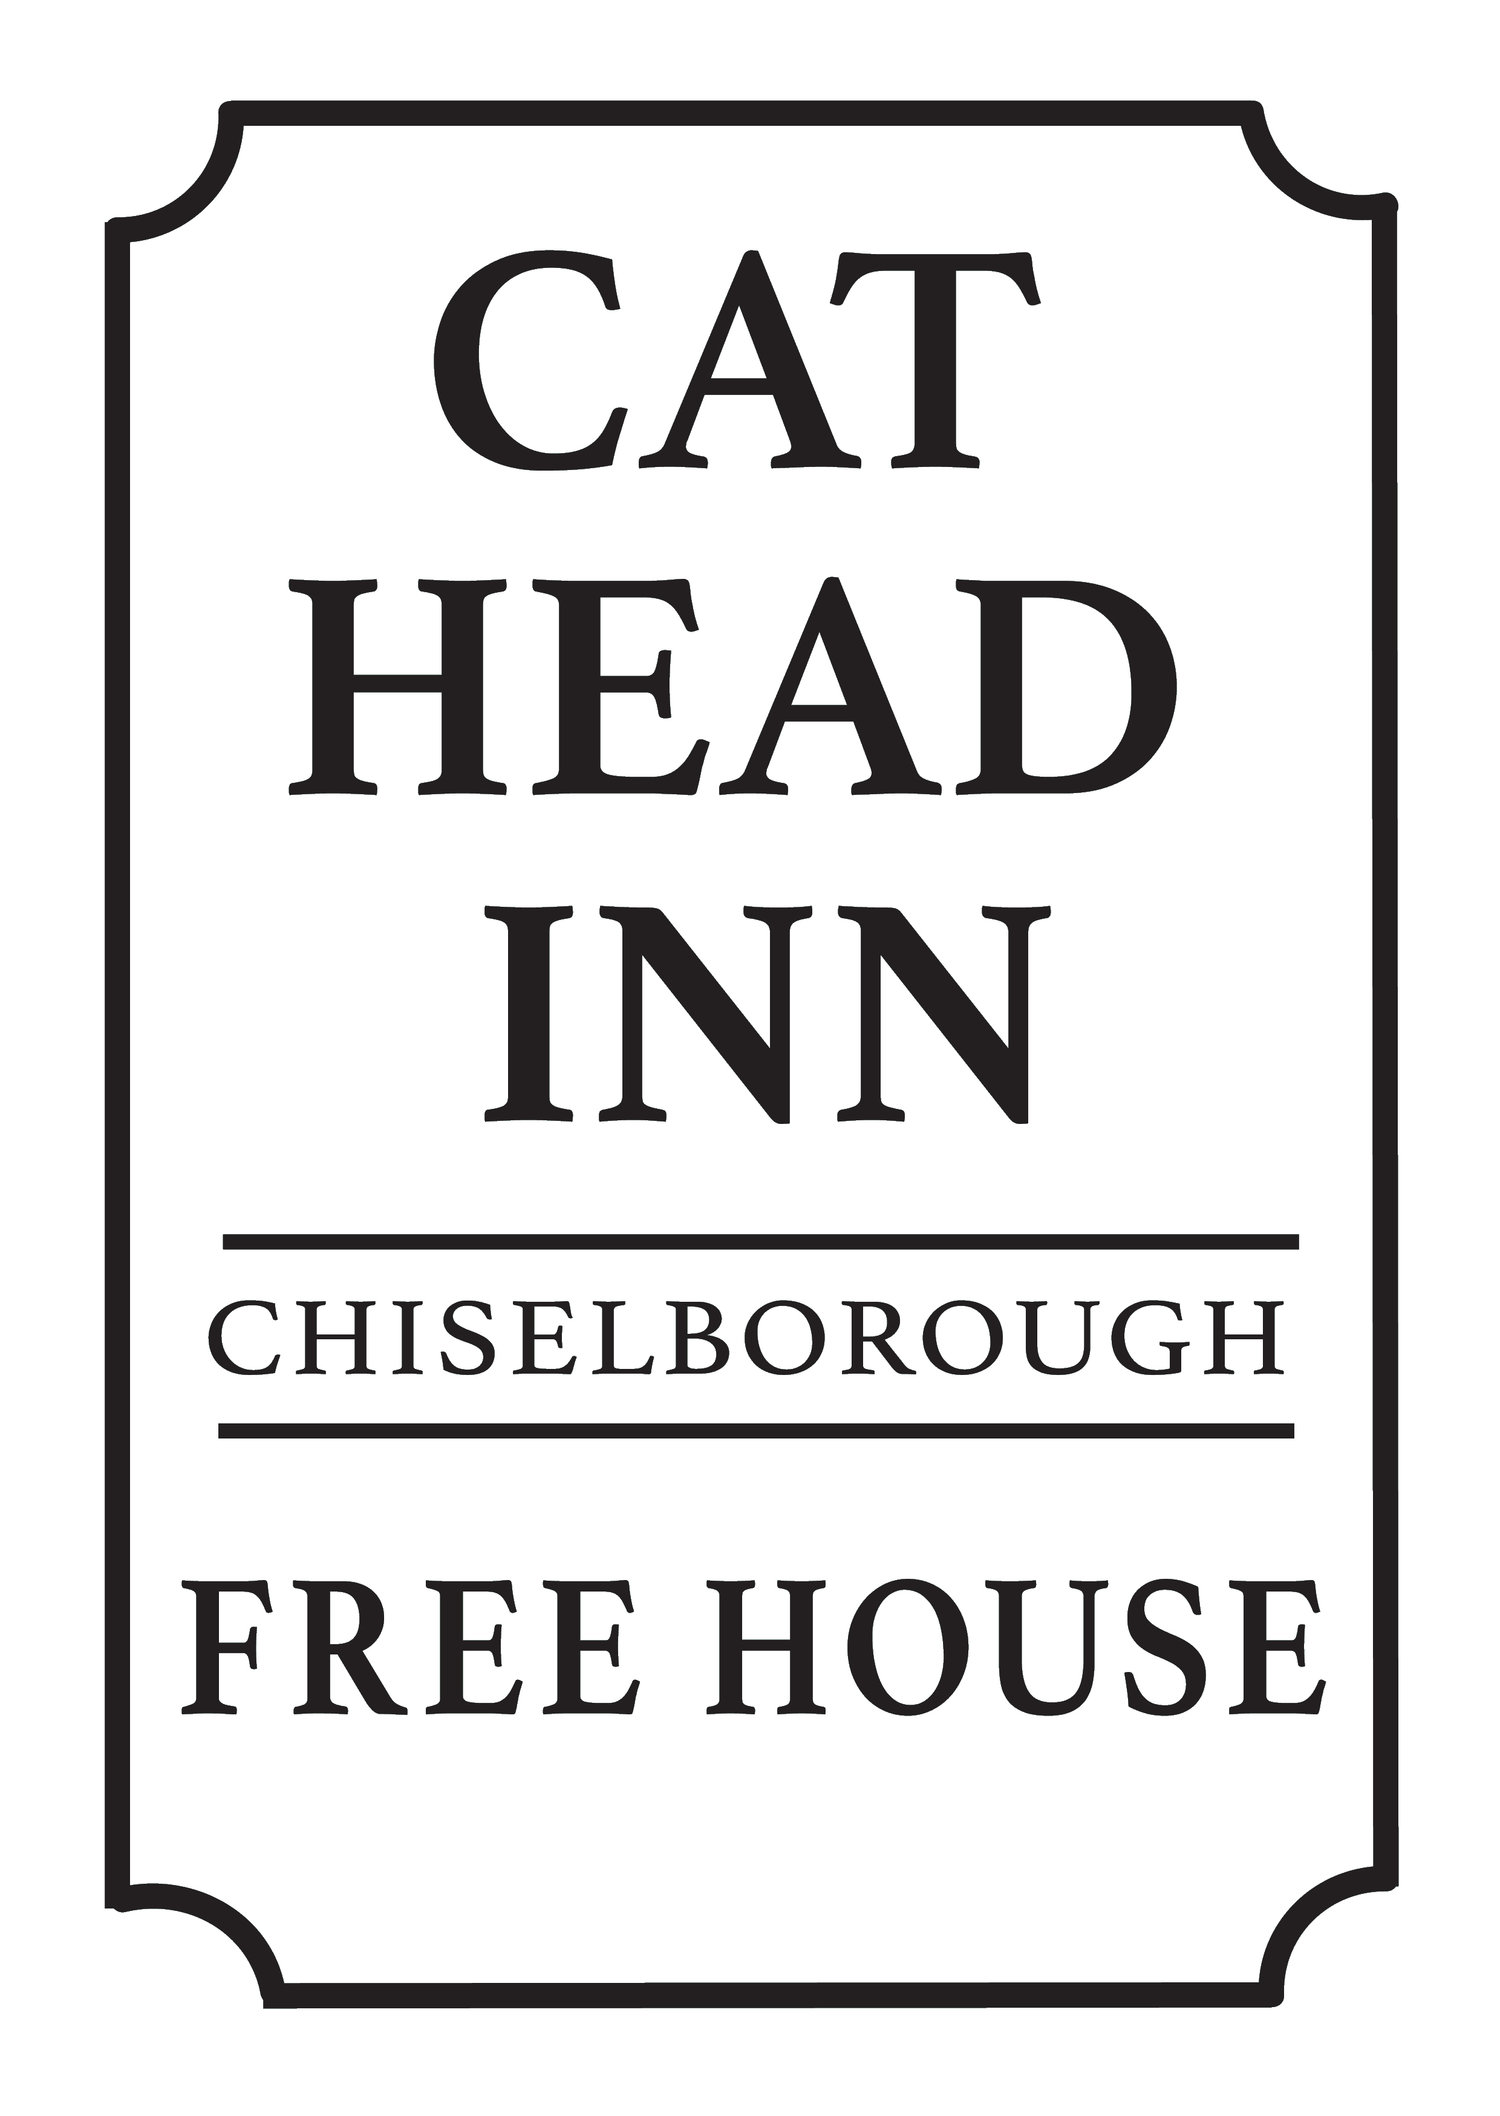 Cat Head Inn